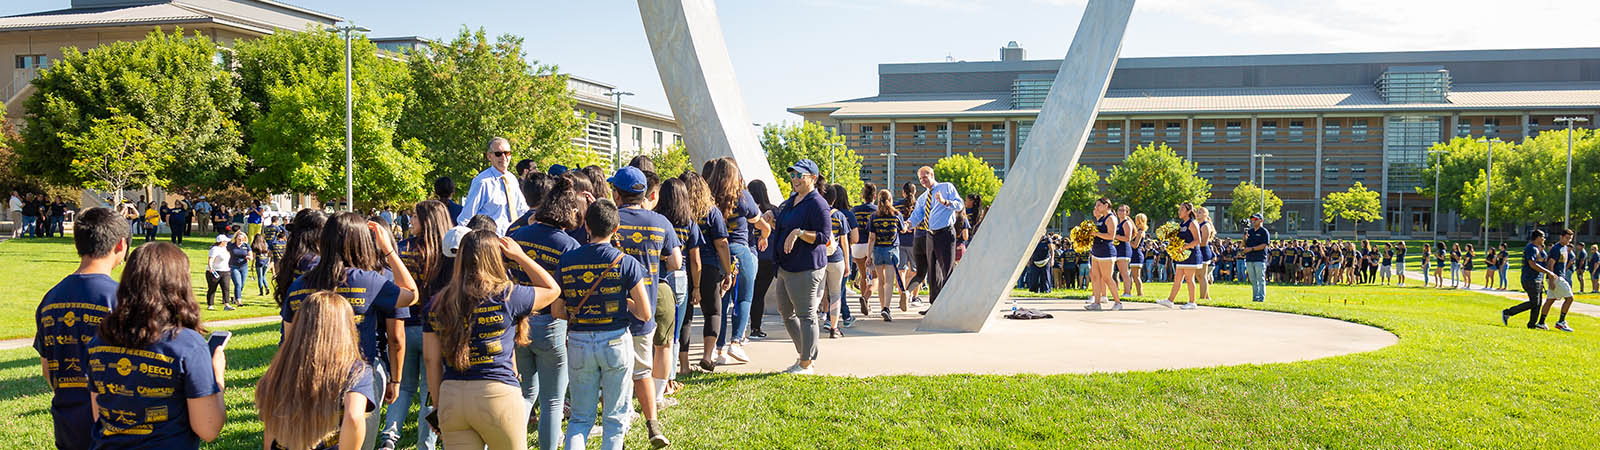 Interim Chancellor Nathan Brostrom welcoming incoming students in fall 2019